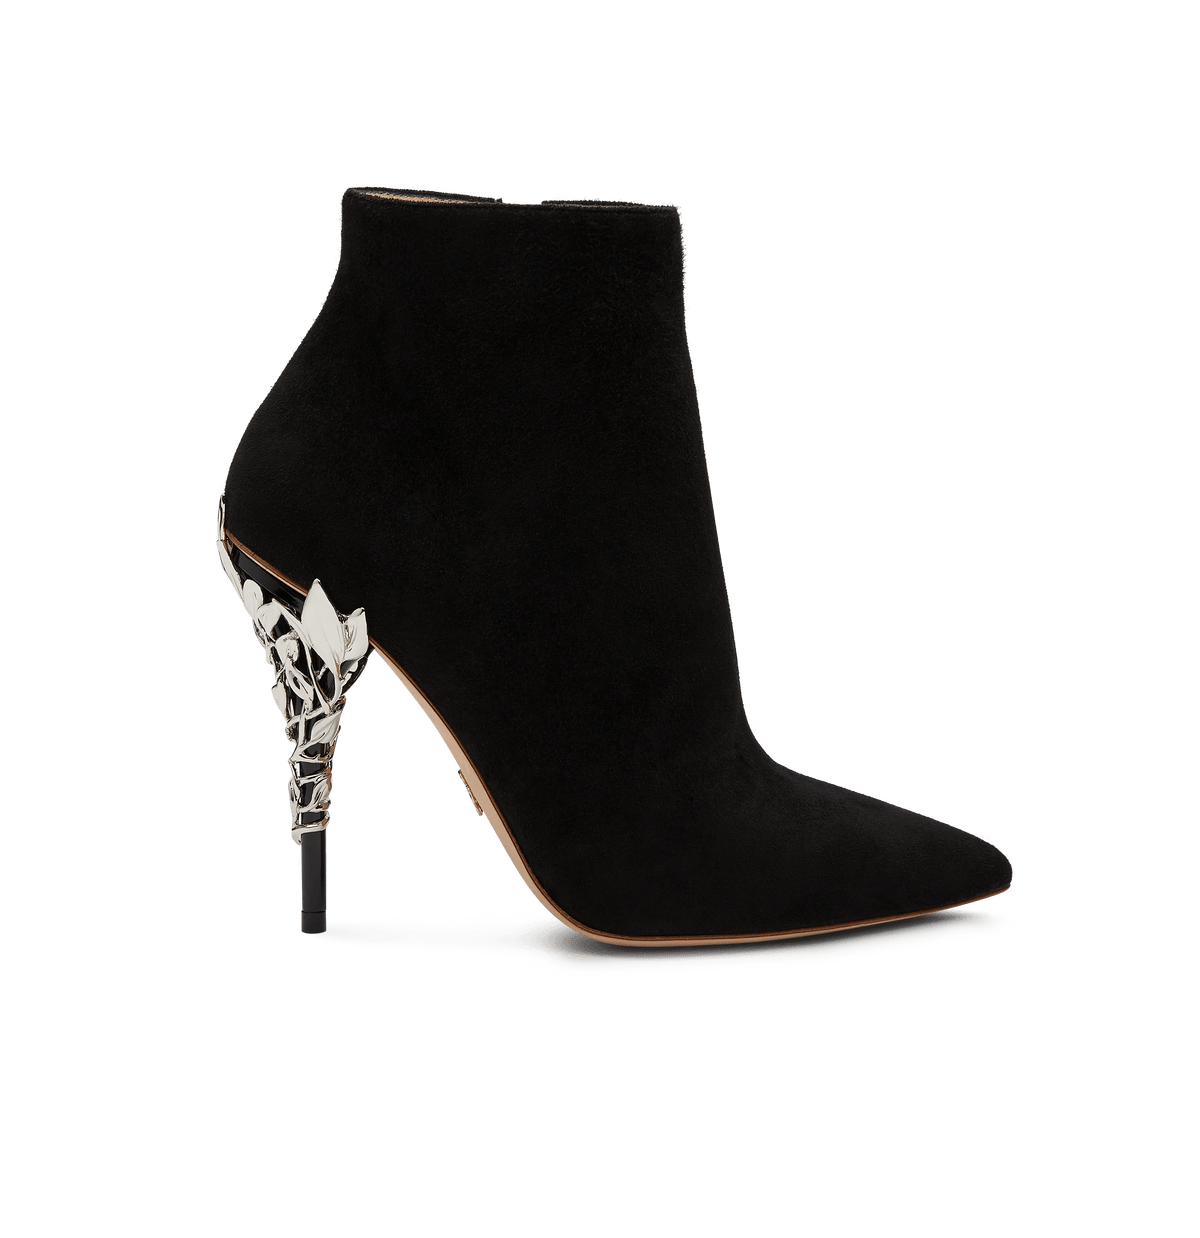 Black Suede Eden Ankle Boots with Silver Leaves